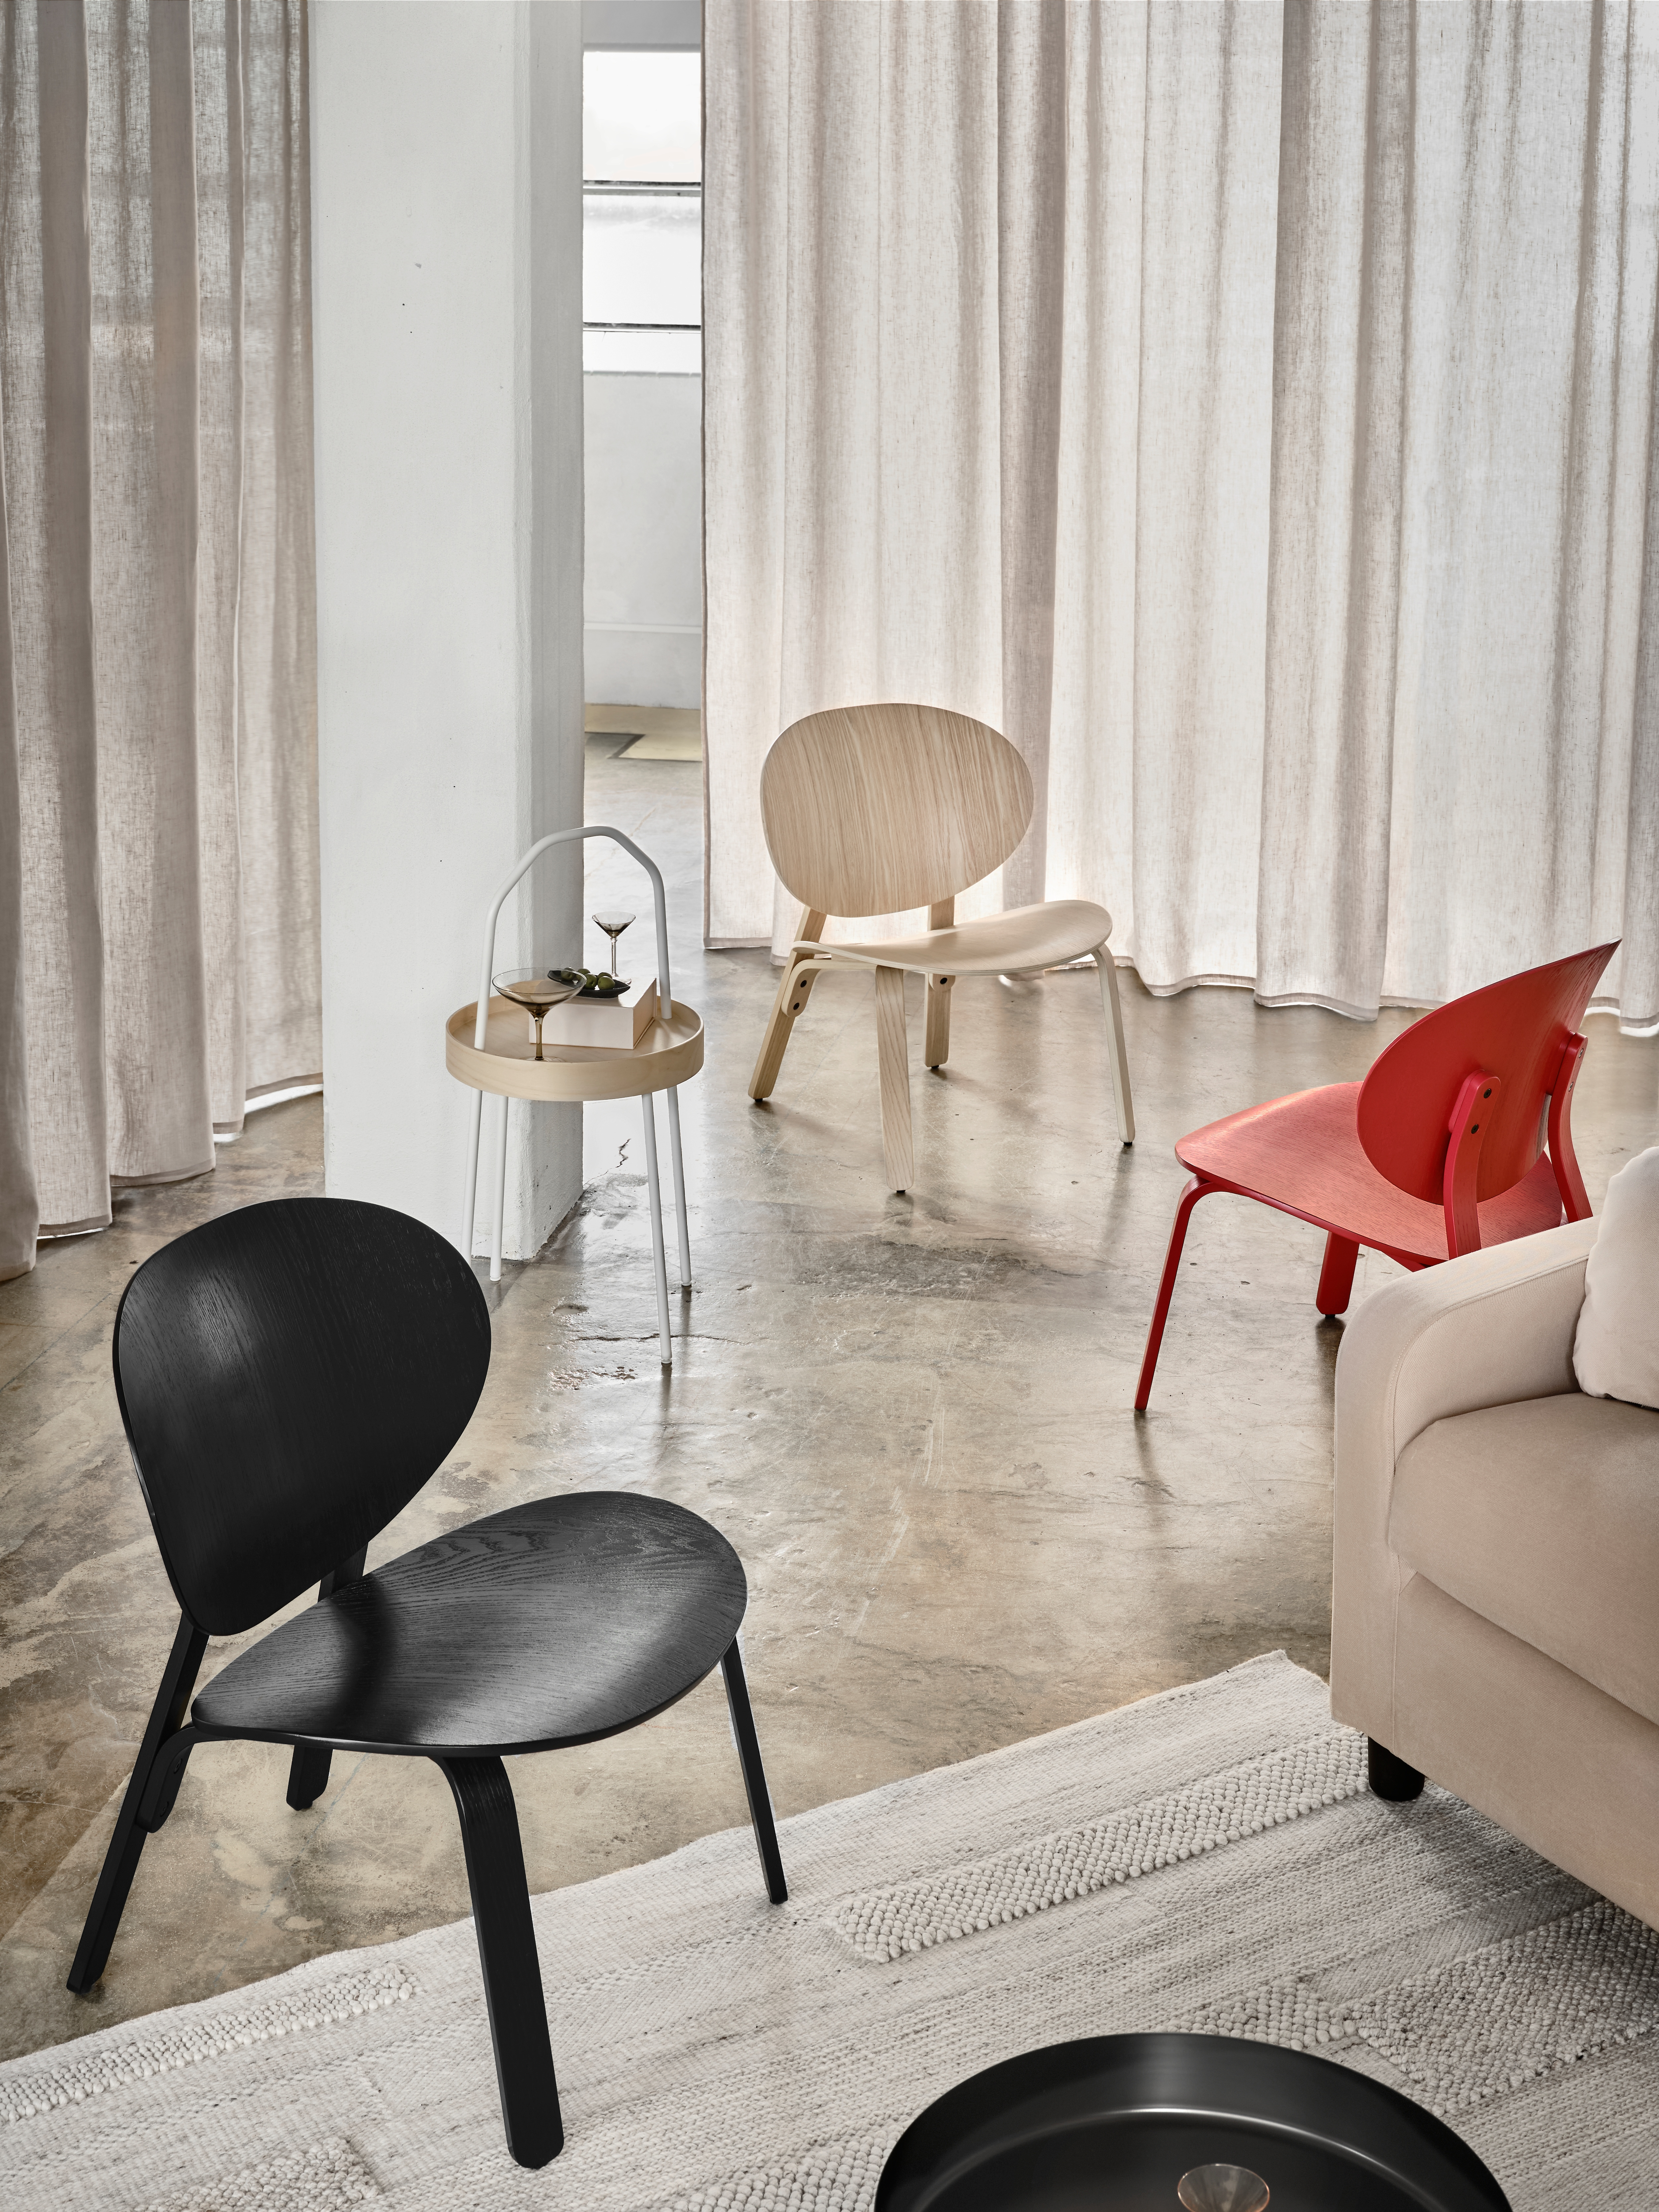 Three FRÖSET chairs in white, red and black stained oak veneer standing in a relaxed way in connection to a sofa.